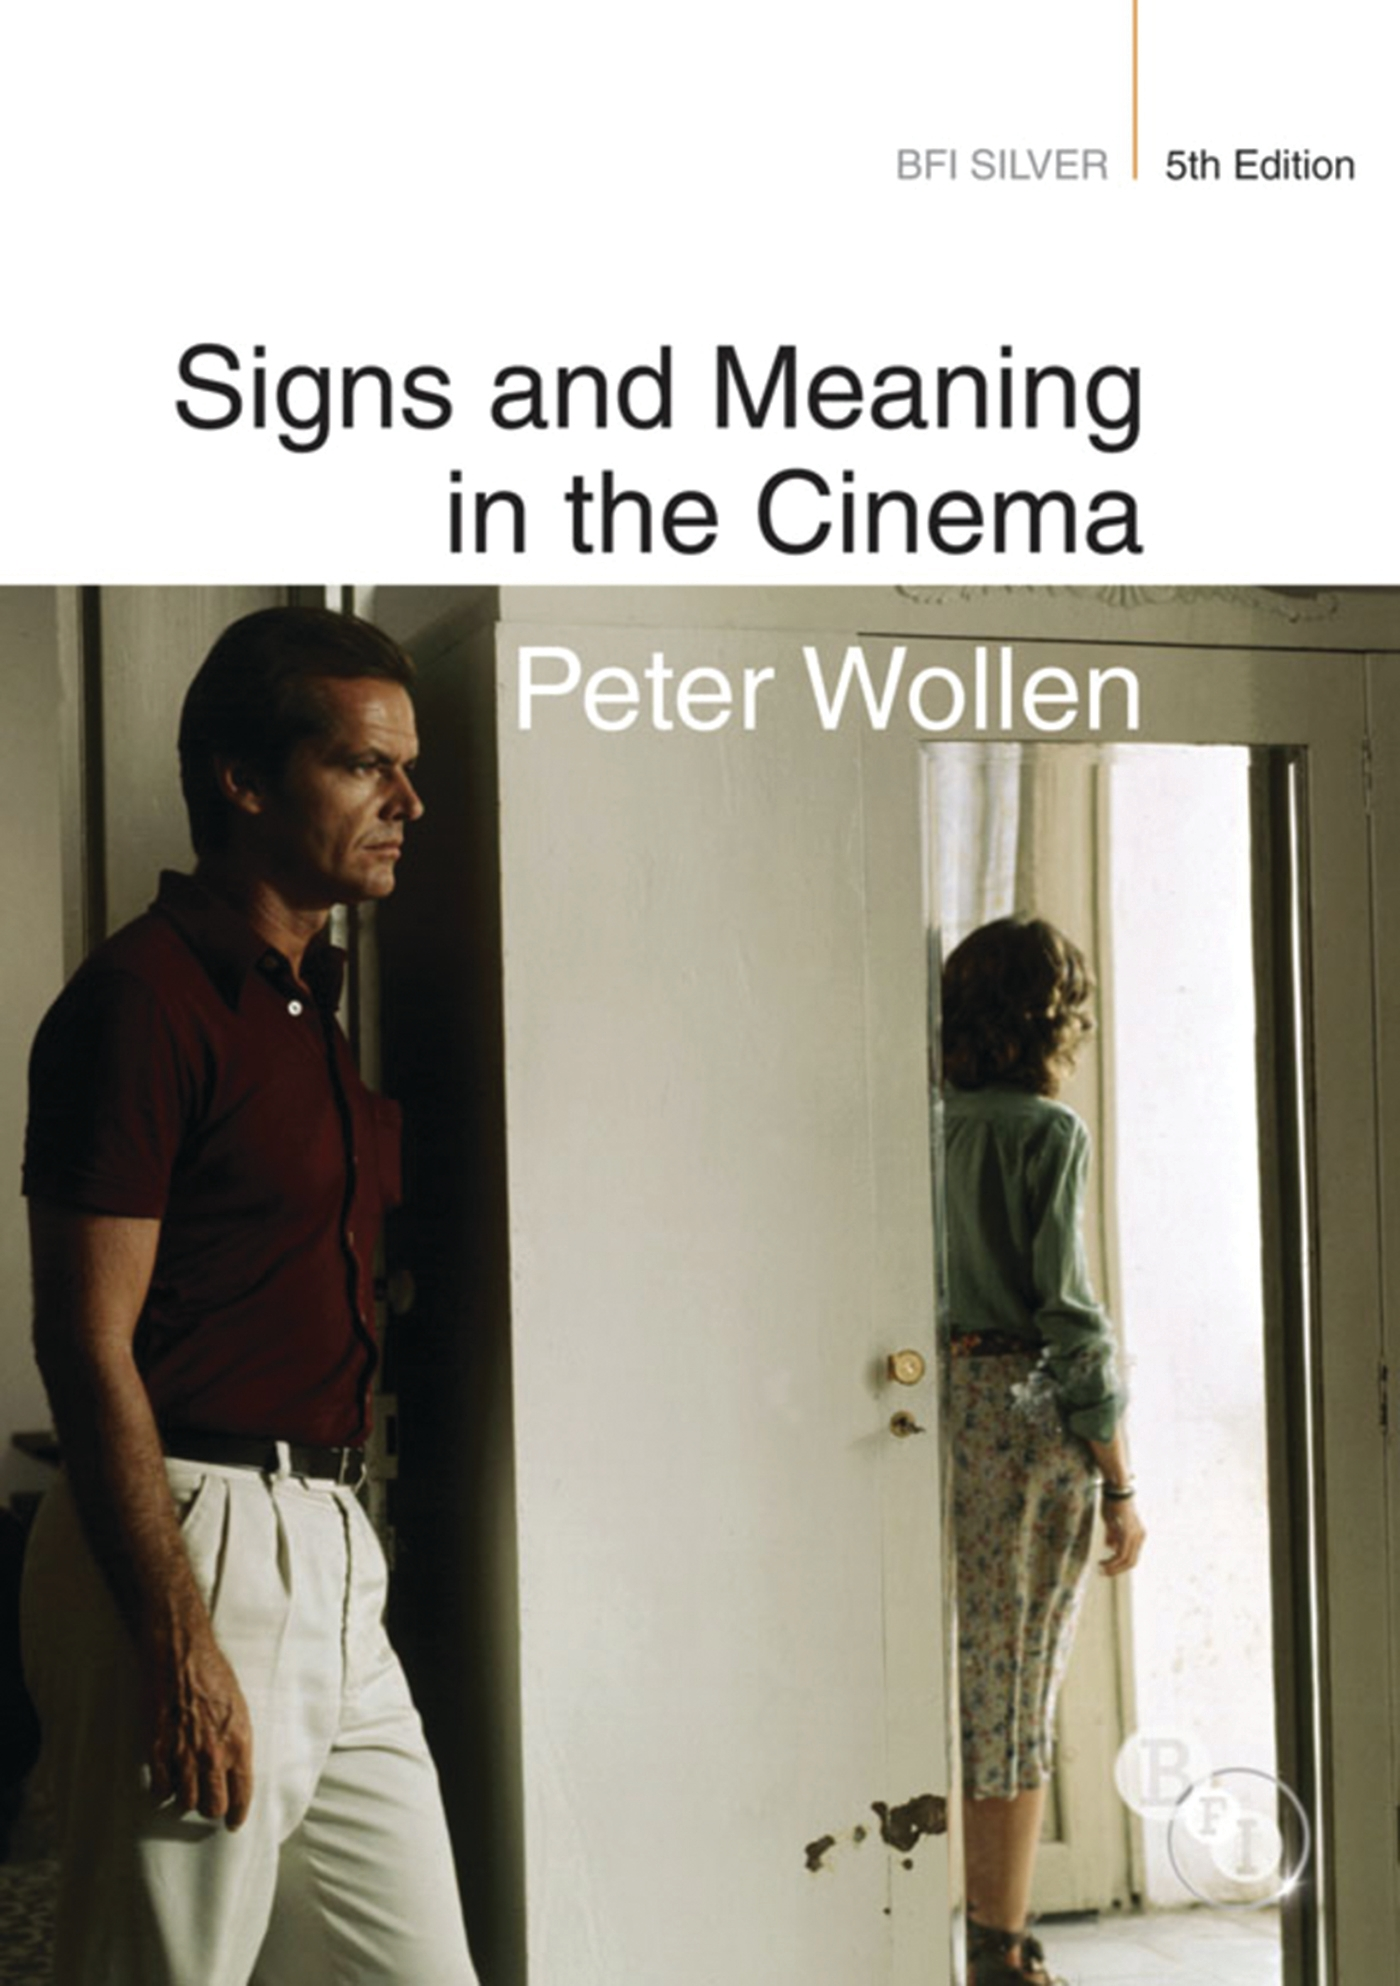 Front cover of Signs and Meaning in the Cinema by Peter Wollen